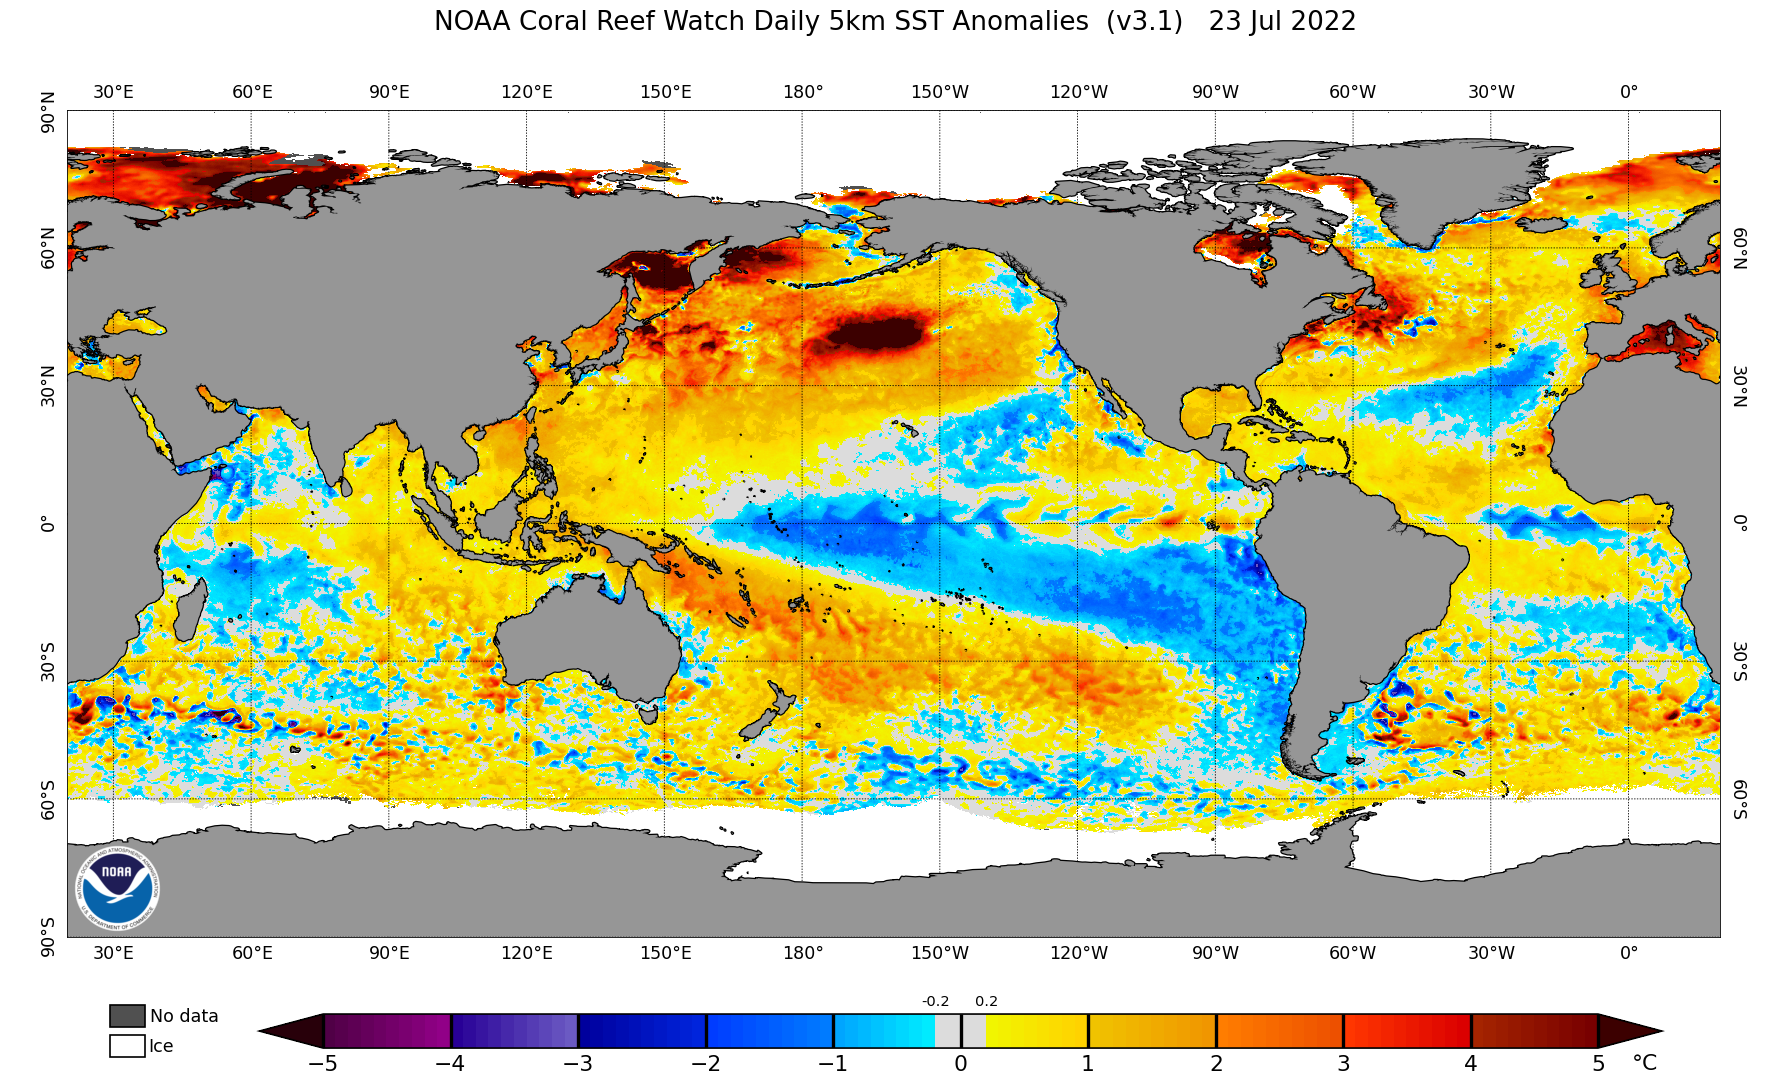 ssta.daily.current.png?v=06Sep20